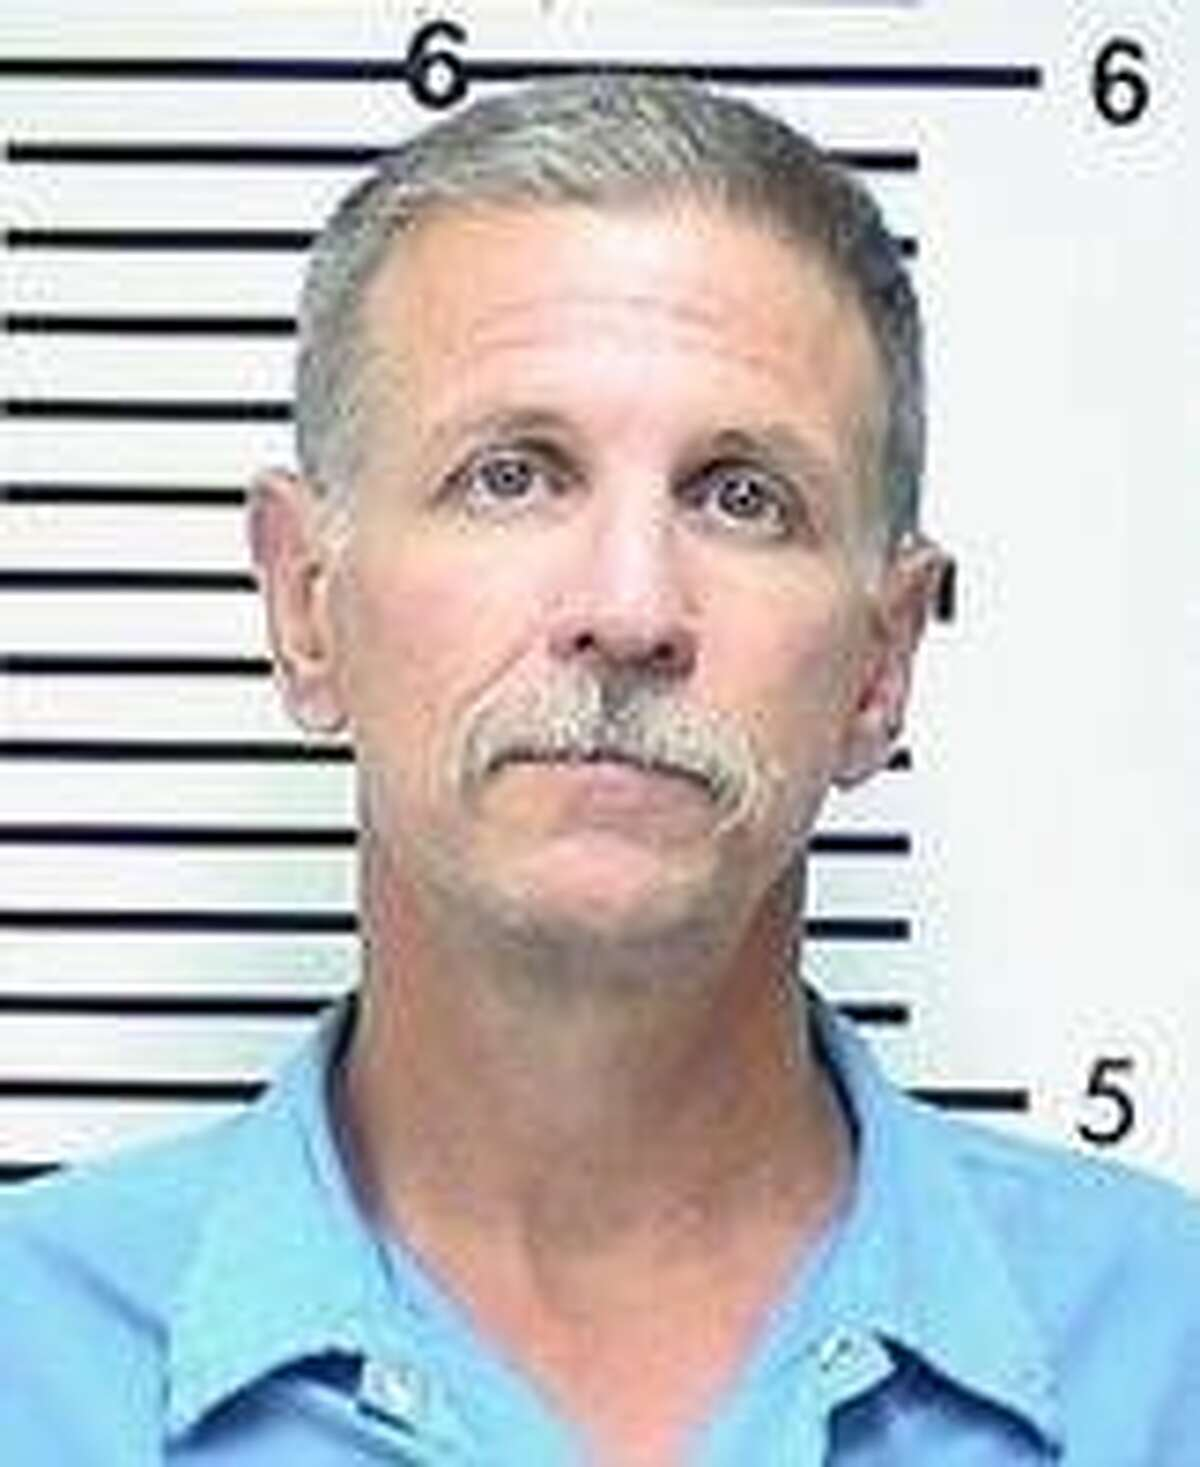 Alameda County prosecutors have charged David Misch with murder and special circumstances of murder.